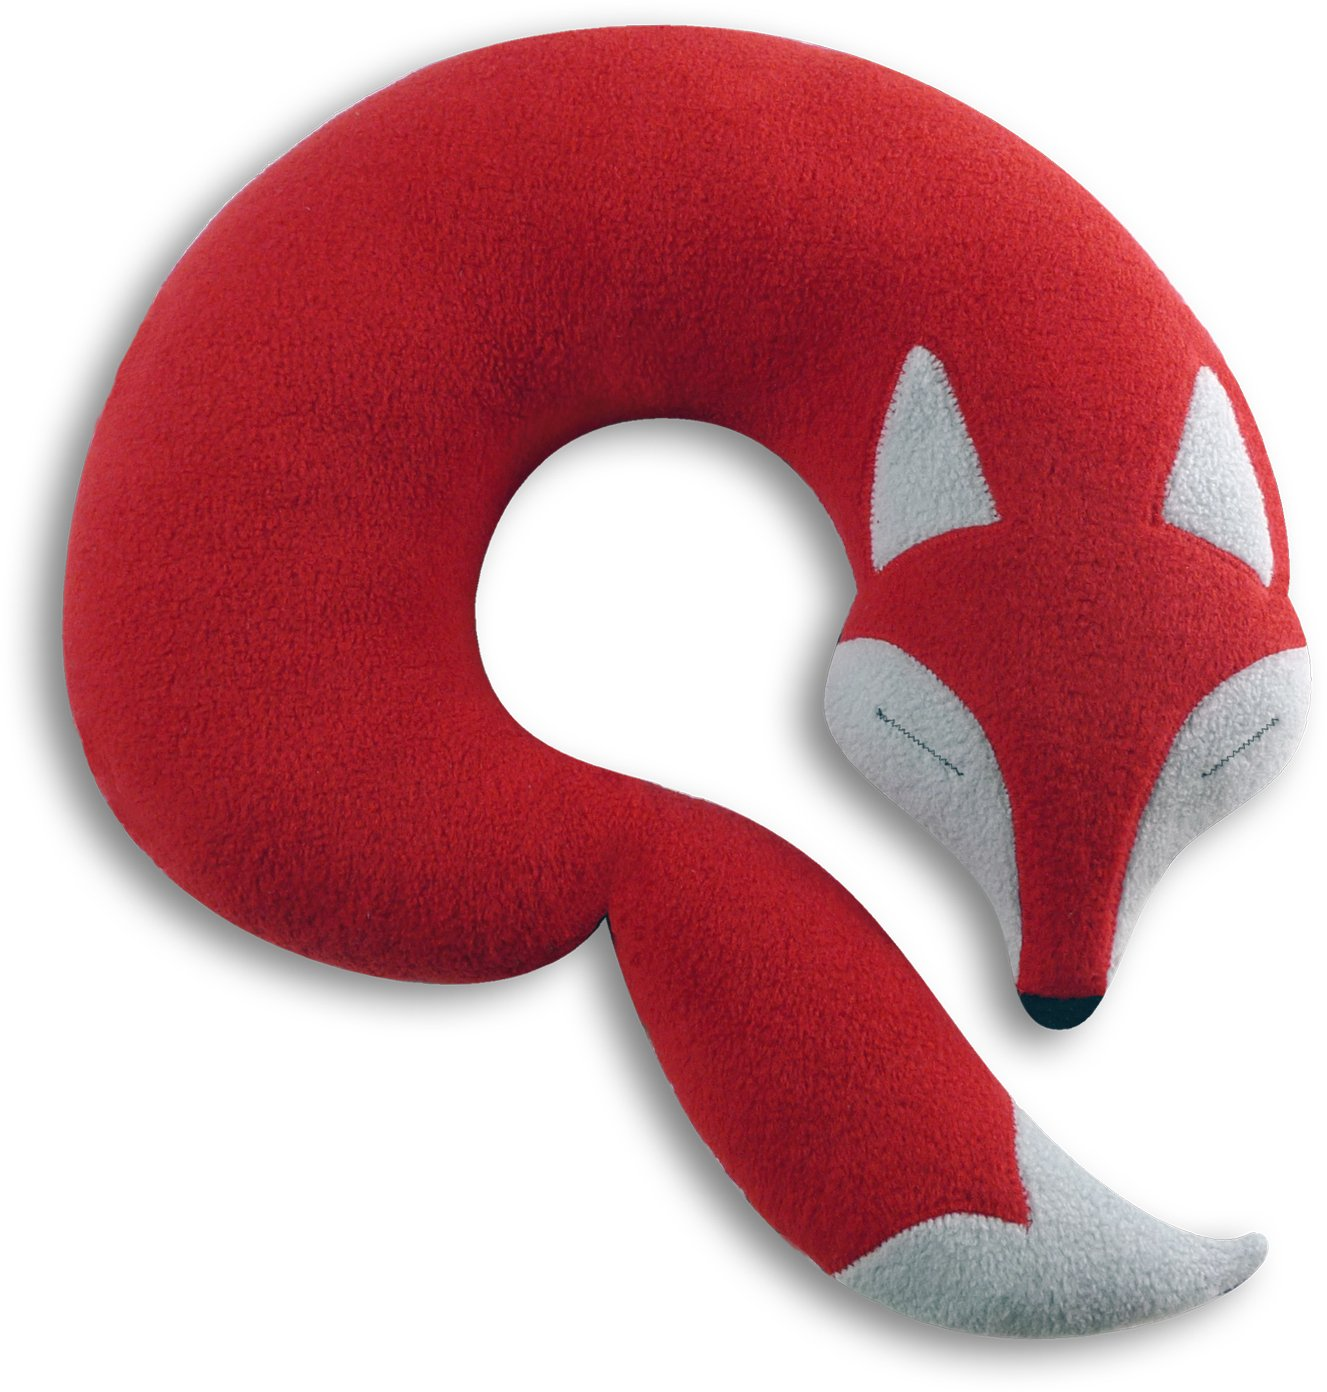 Leschi Travel pillow (for car and plane journeys) | 36836 | Peter the fox | Colour: Fire/Midnight Leschi GmbH 4260049582448